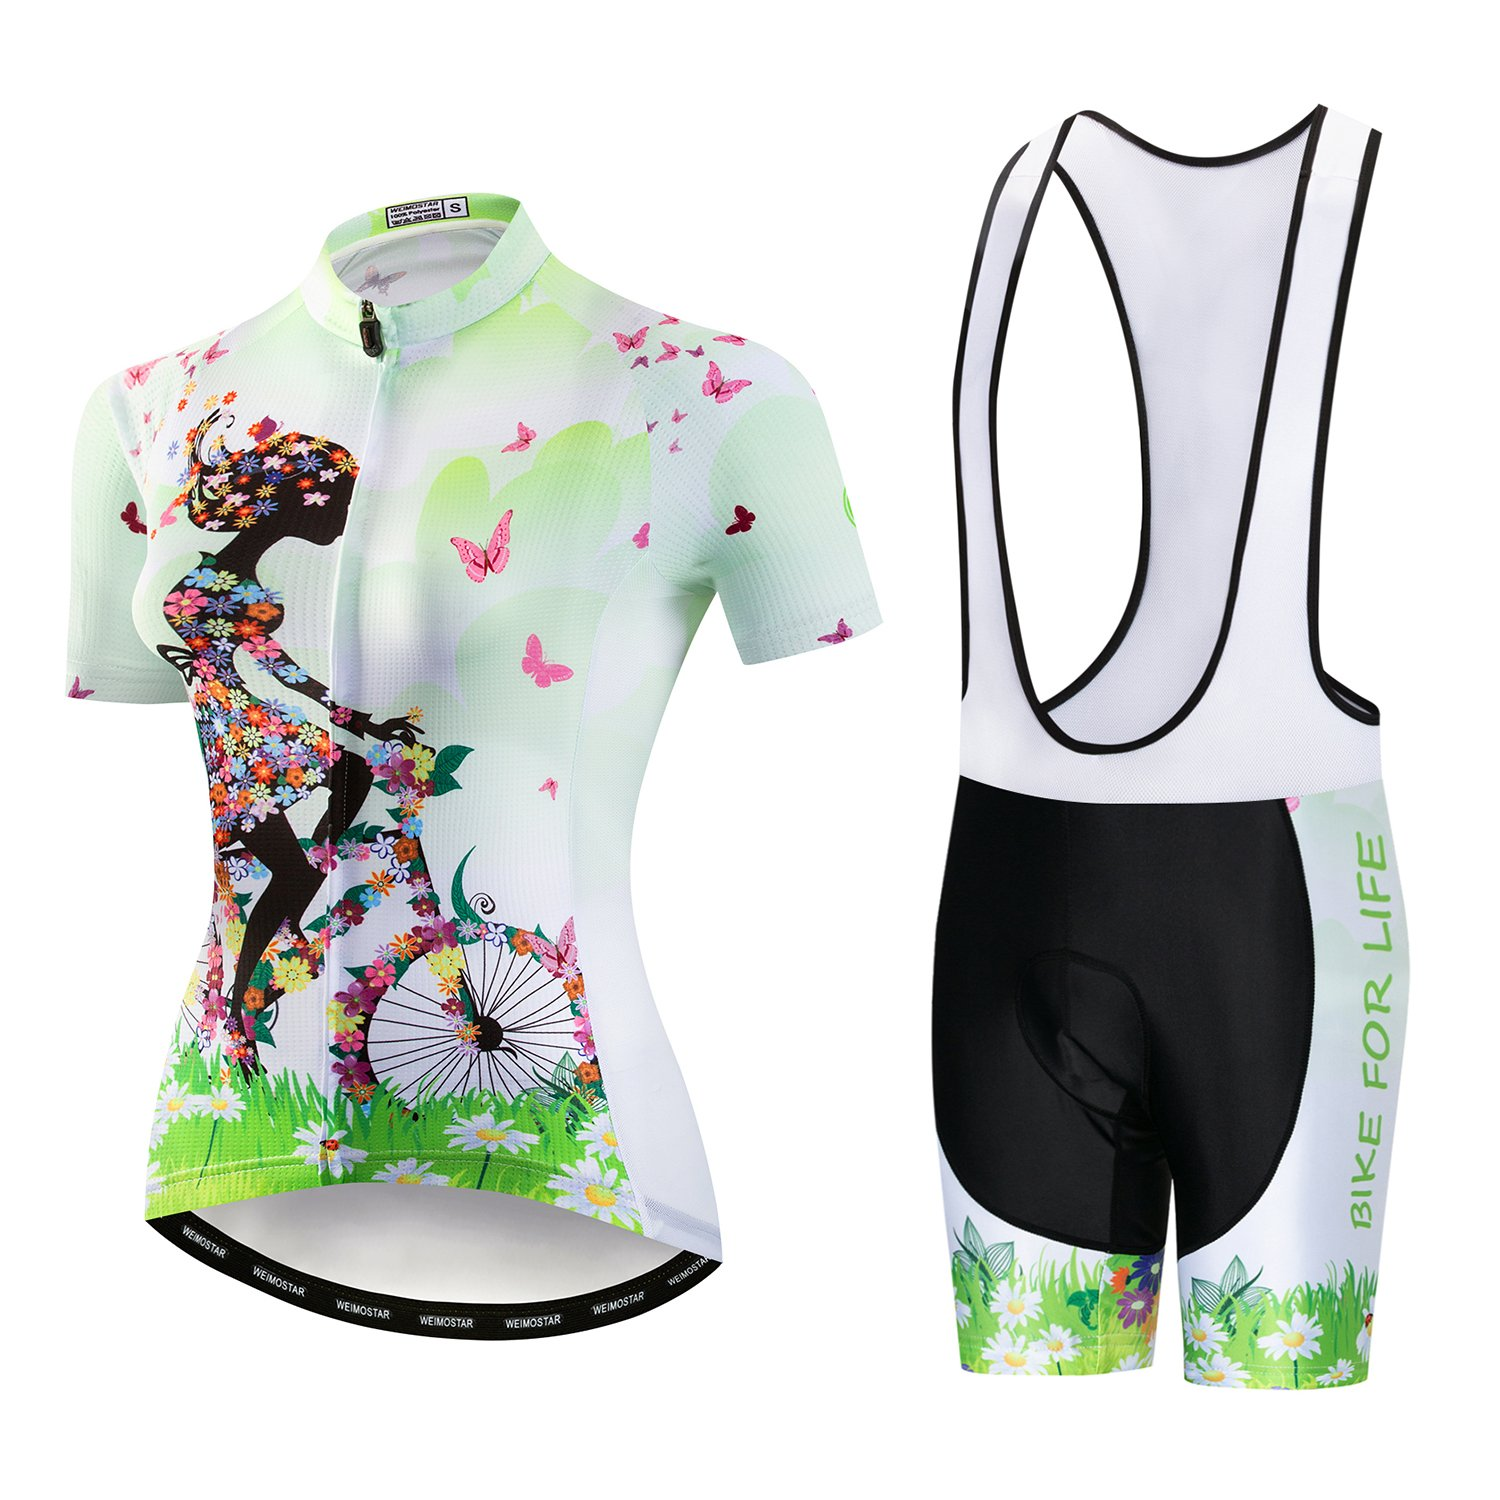 2019激安通販 Weimostar SHIRT レディース SHIRT Small Weimostar Green Jersey and Bib Shorts Shorts B07FPB7SRT, ナビ キャンセラー販売:af9b0c45 --- martinemoeykens-com.access.secure-ssl-servers.info